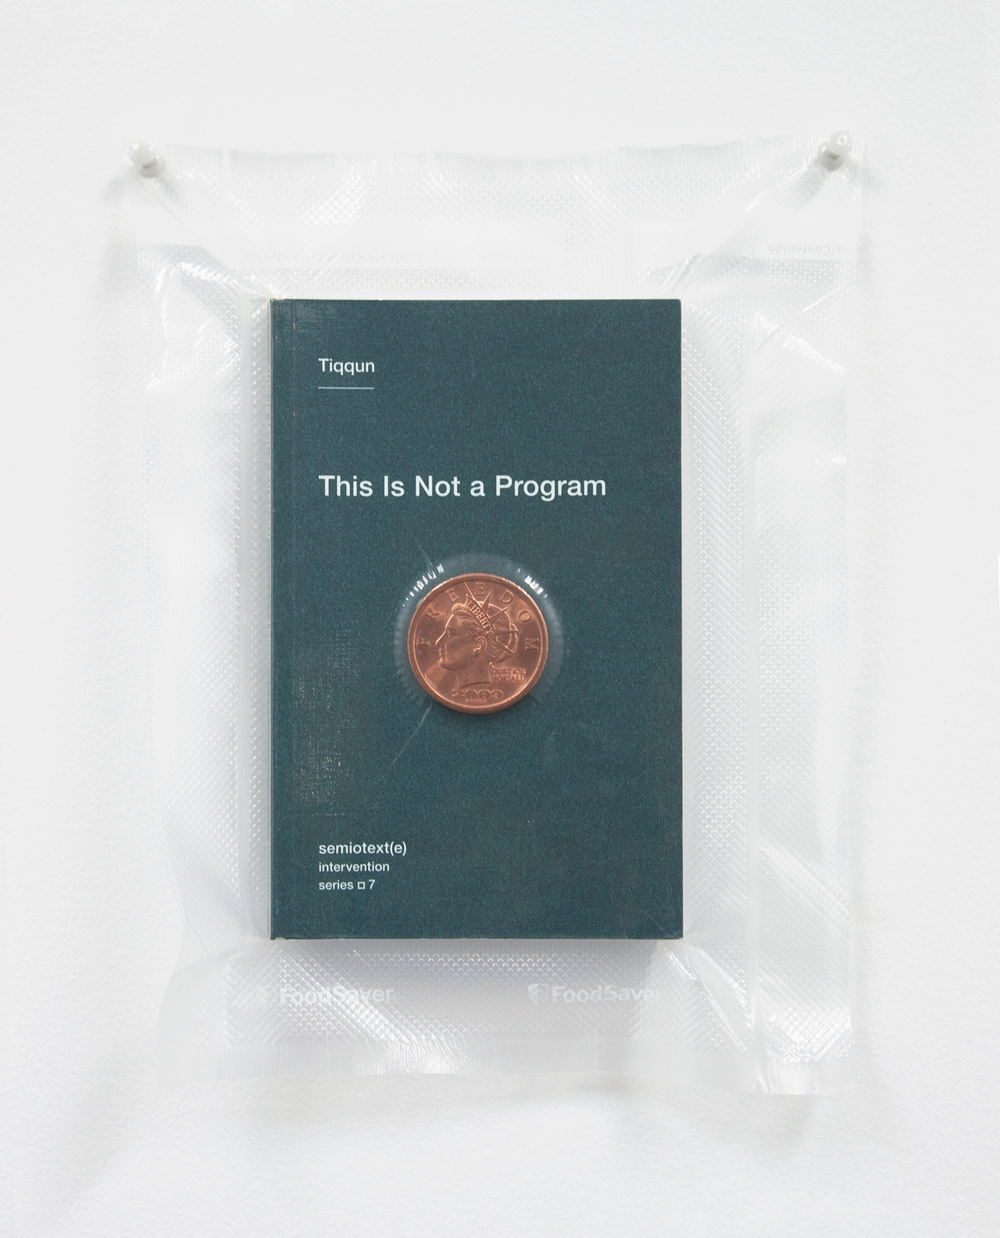 Brad Troemel  TSA No Fly List Vacuum Sealed Tiqqun     -'This is Not a Program' with AOCS $20 solid copper liberty coin  , 2013   10 x 8 inches